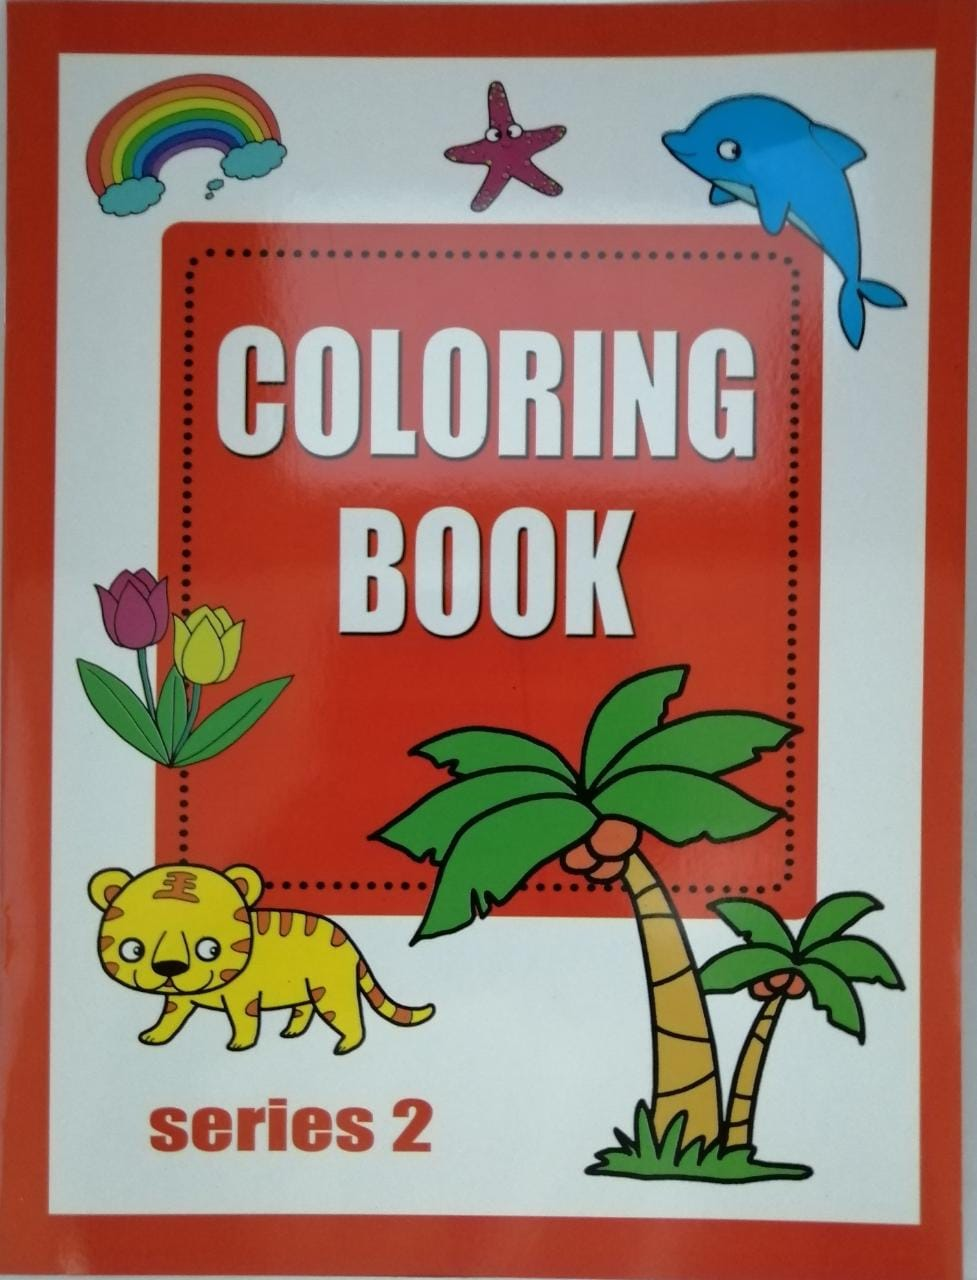 Coloring Books: Series 2